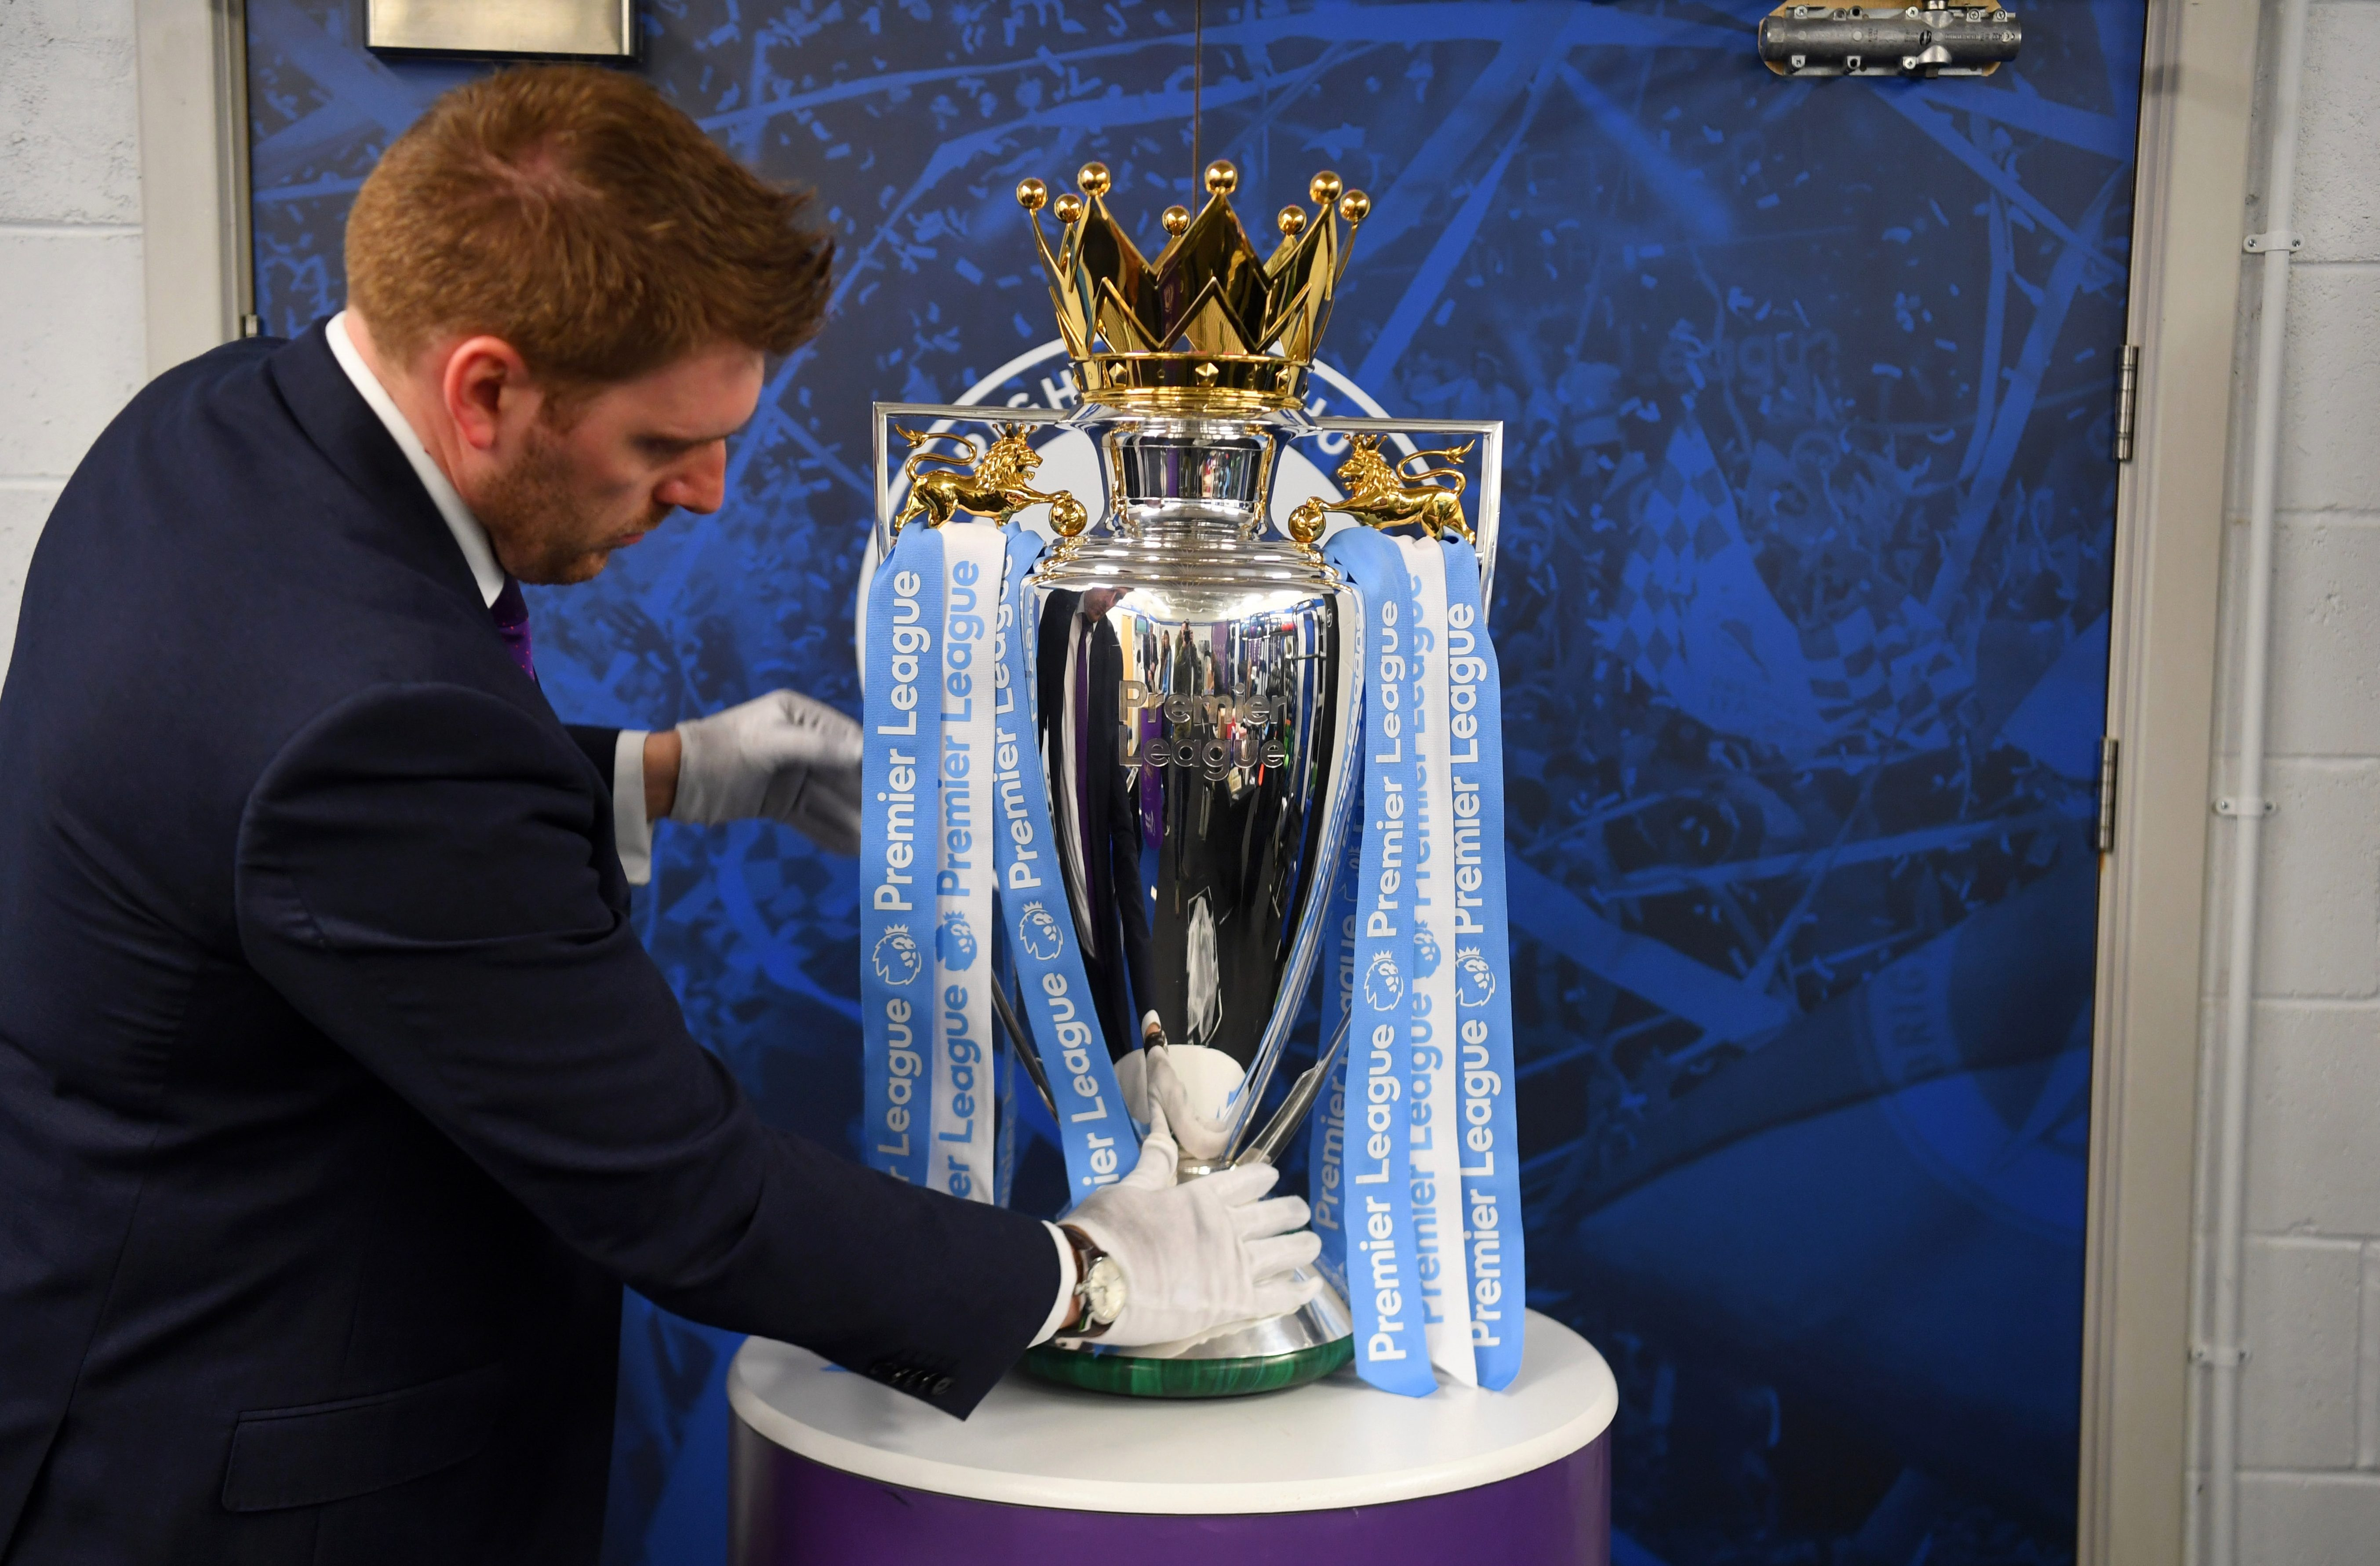 The blue ribbons on the trophy